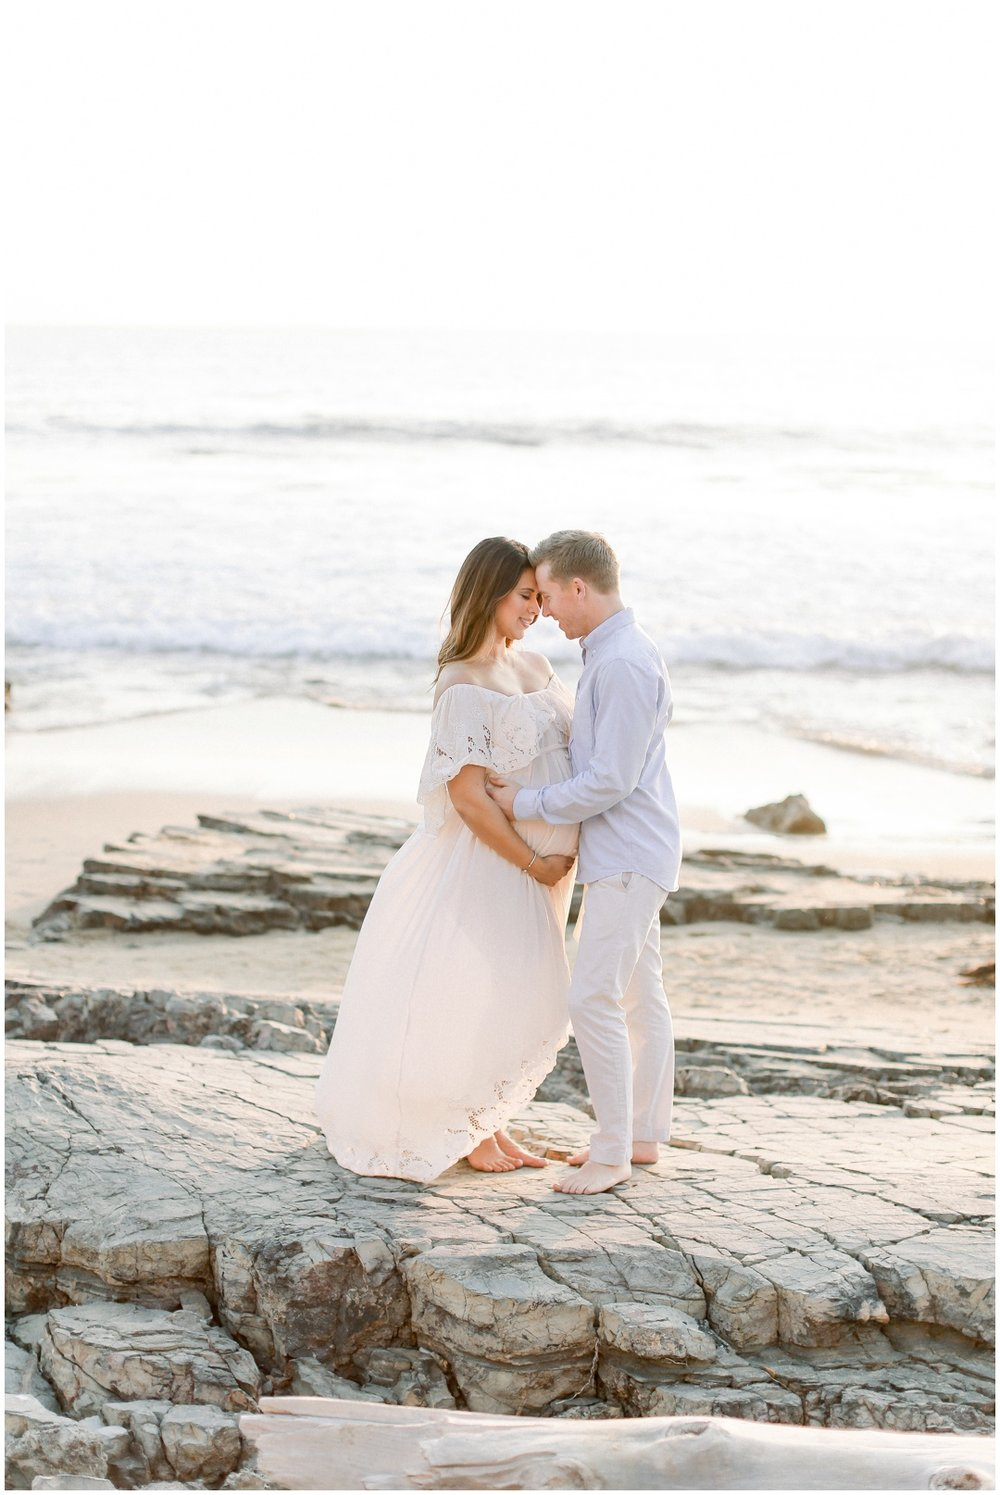 Orange_County_Maternity_Photographer_Newport_Beach_Family_Photographer_Newport_Beach_Newborn_Photographer_Orange_County_Family_Photographer_Cori_Kleckner_Photography_Huntington_Beach_Photographer_Nicole_Gire_Brandon_Gire__2563.jpg